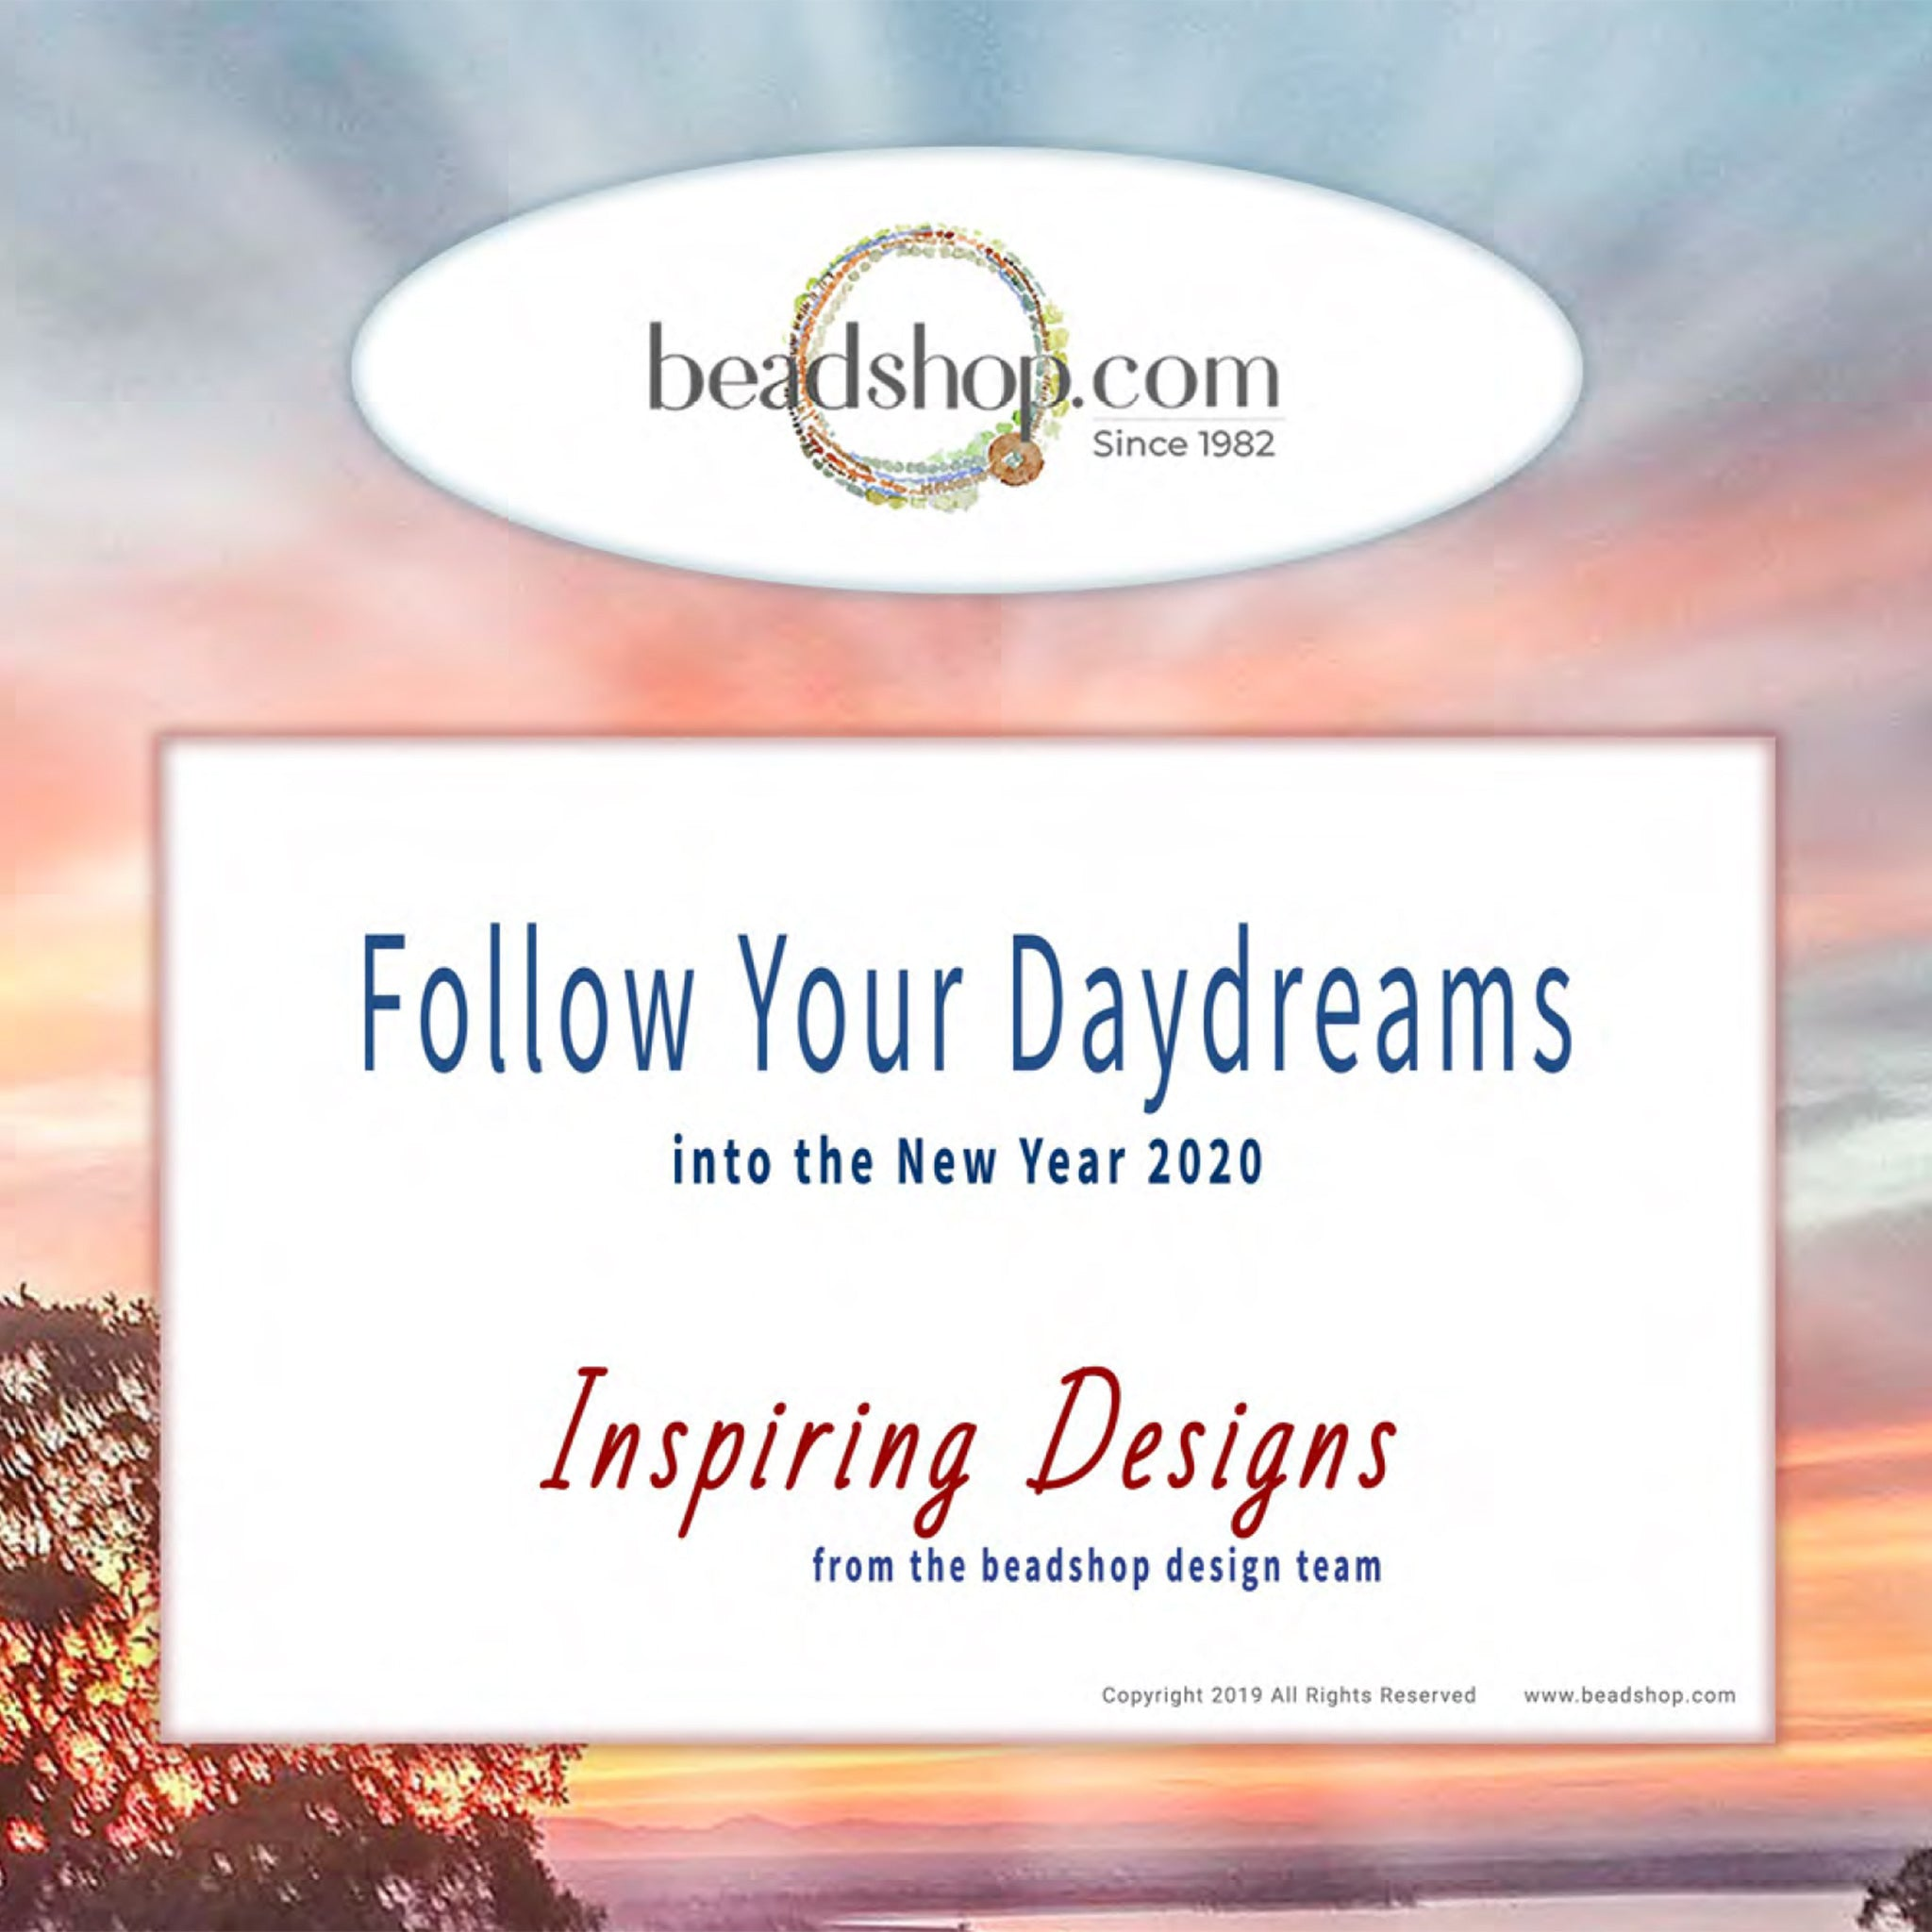 Follow Your Daydreams